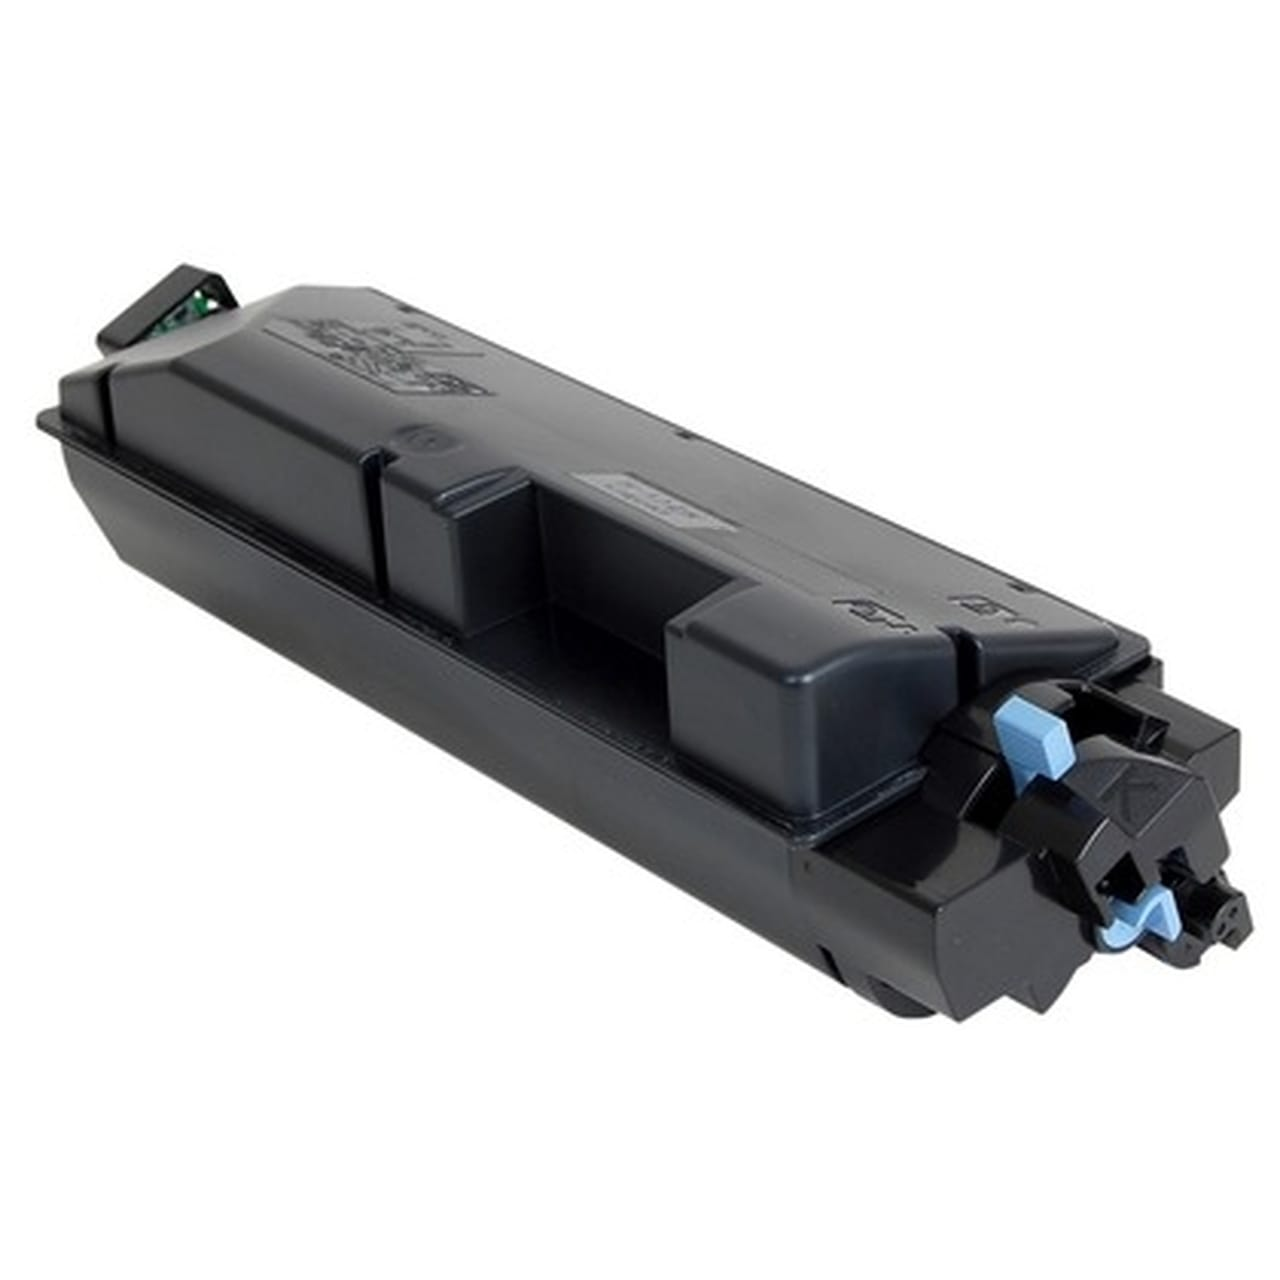 TK-5272K Toner Cartridge - Kyocera Mita Compatible (Black)